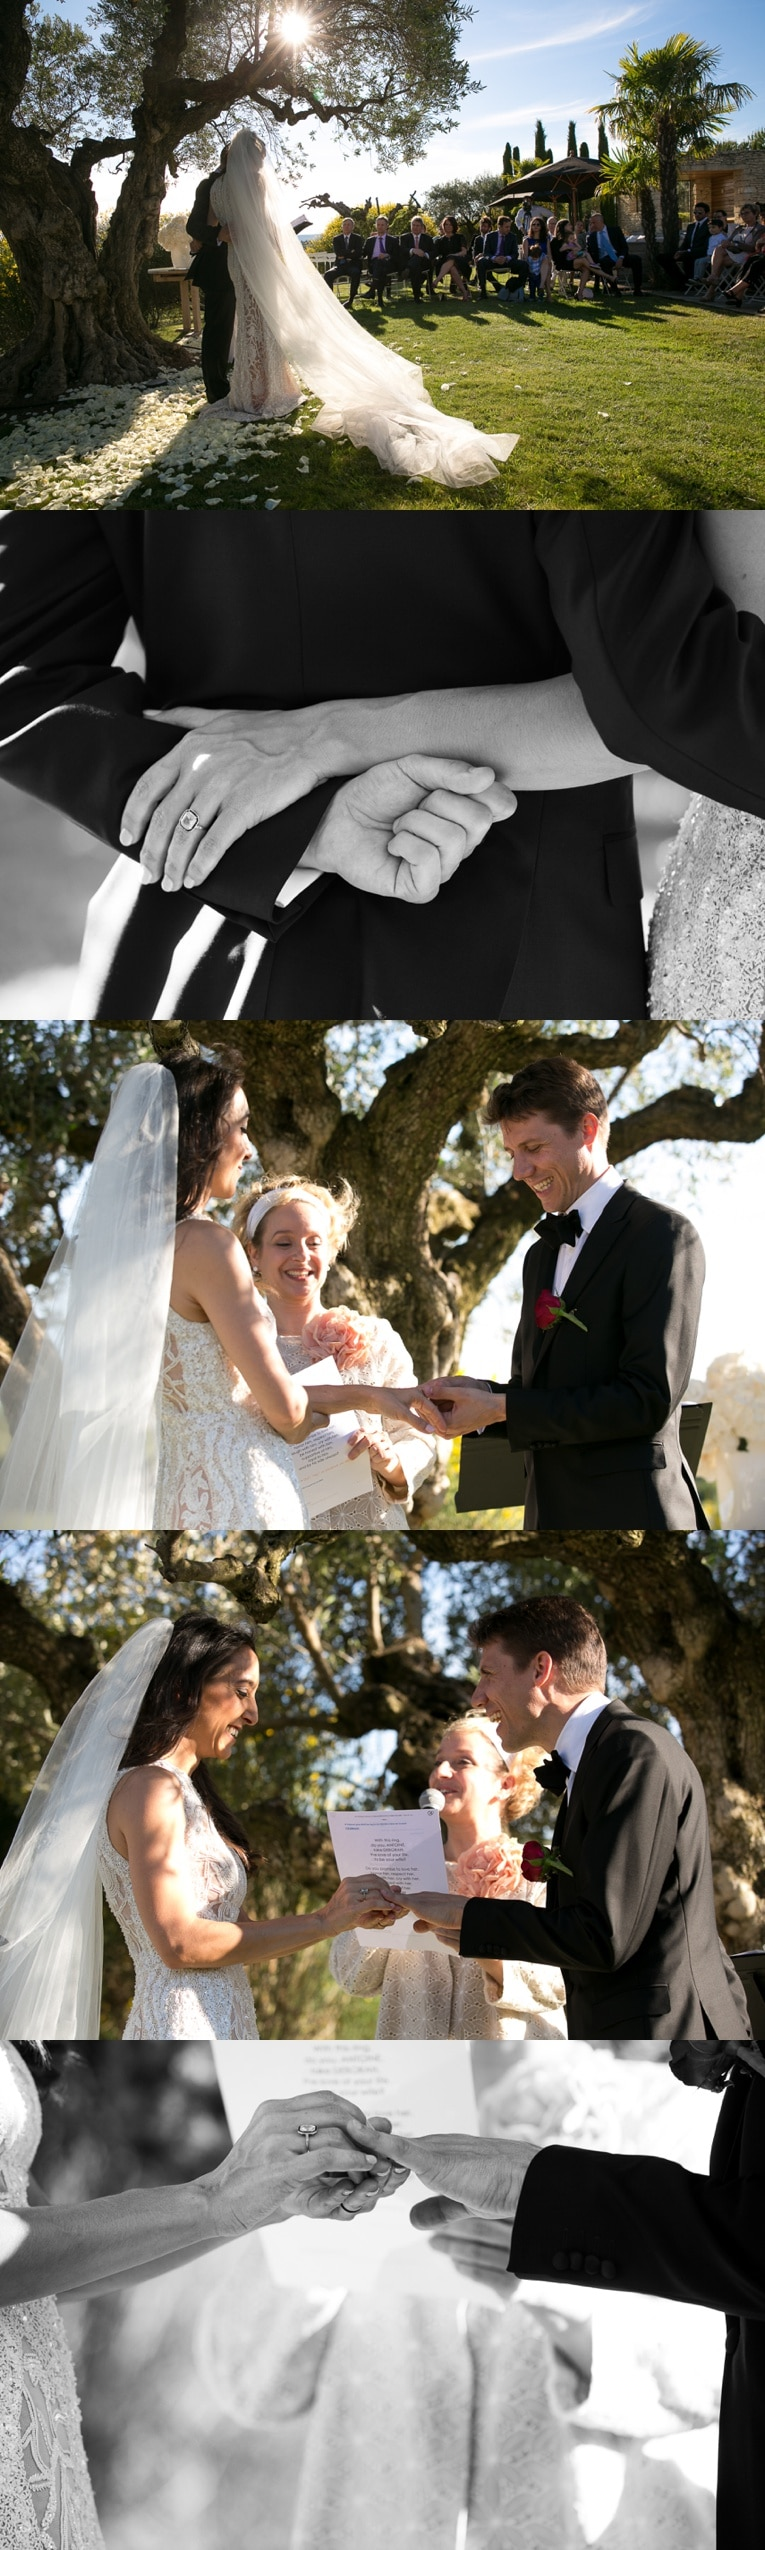 wedding-domaine-des-andeols-provence-22